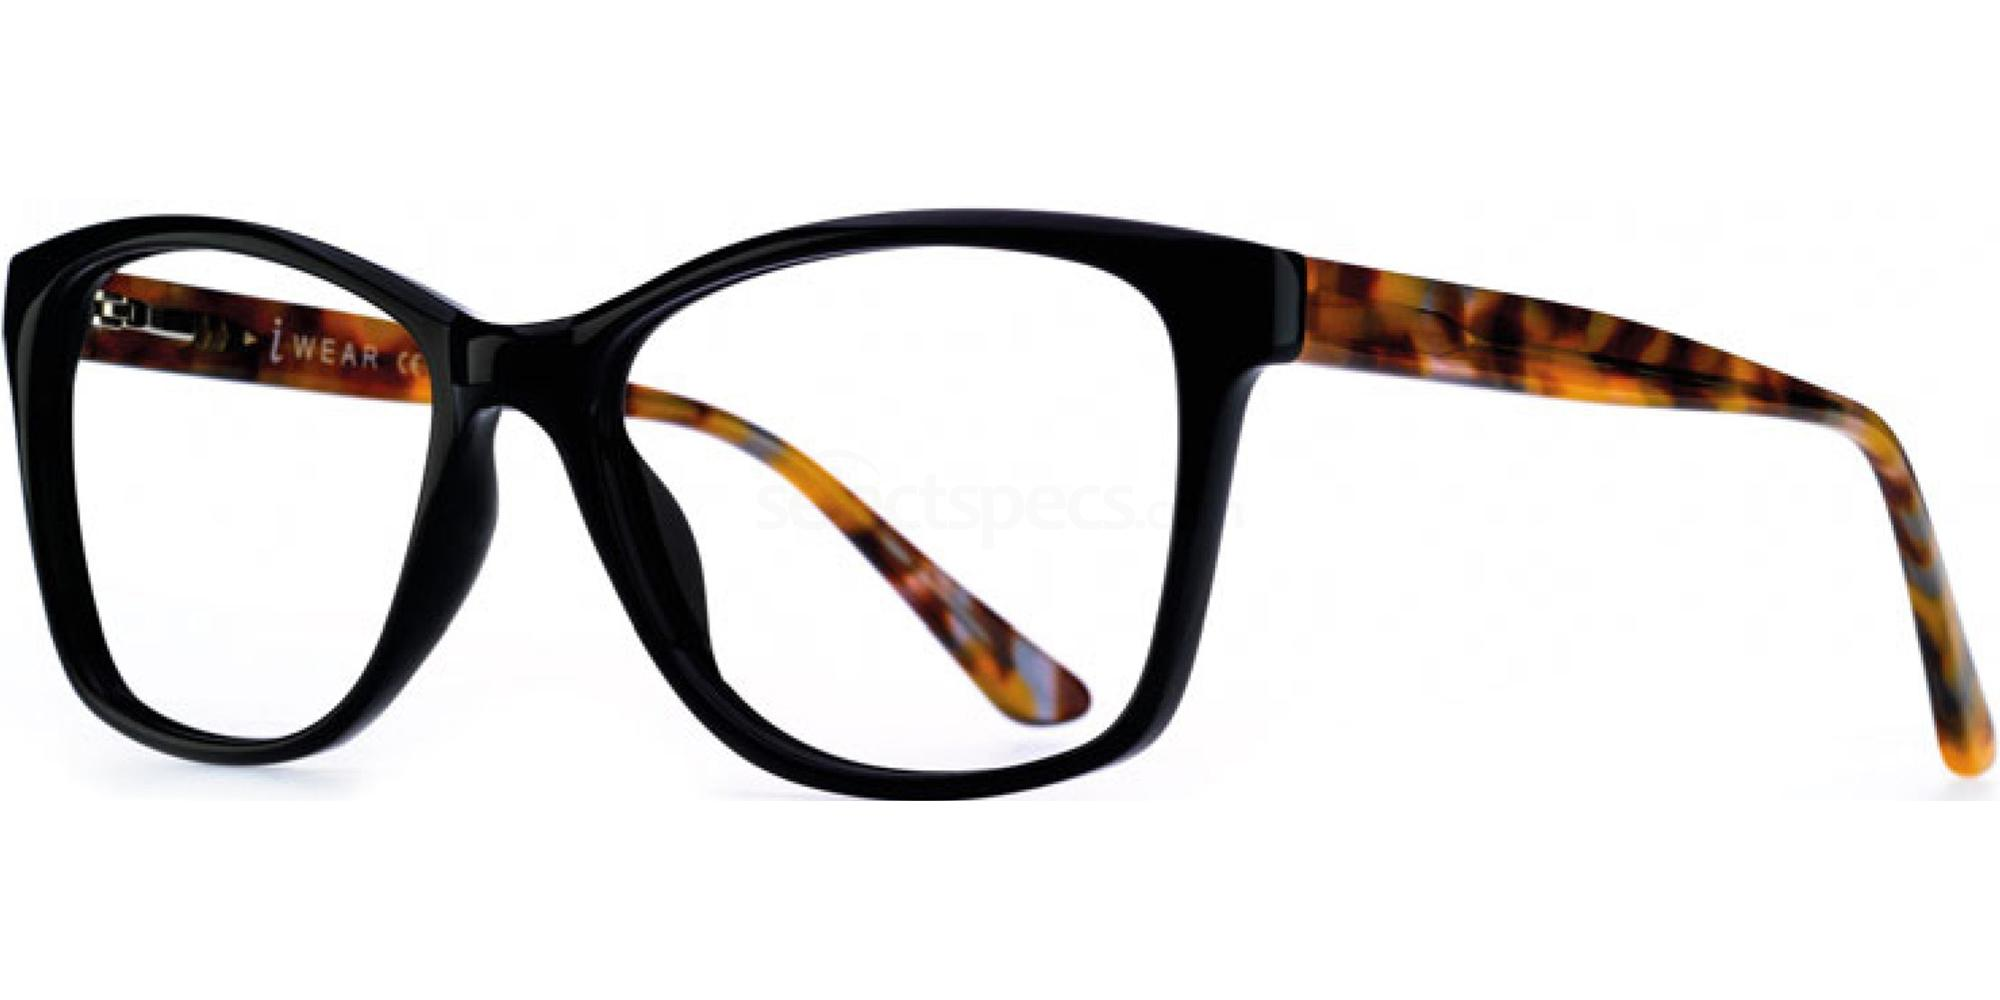 C2 i Wear 5080 Glasses, i Wear